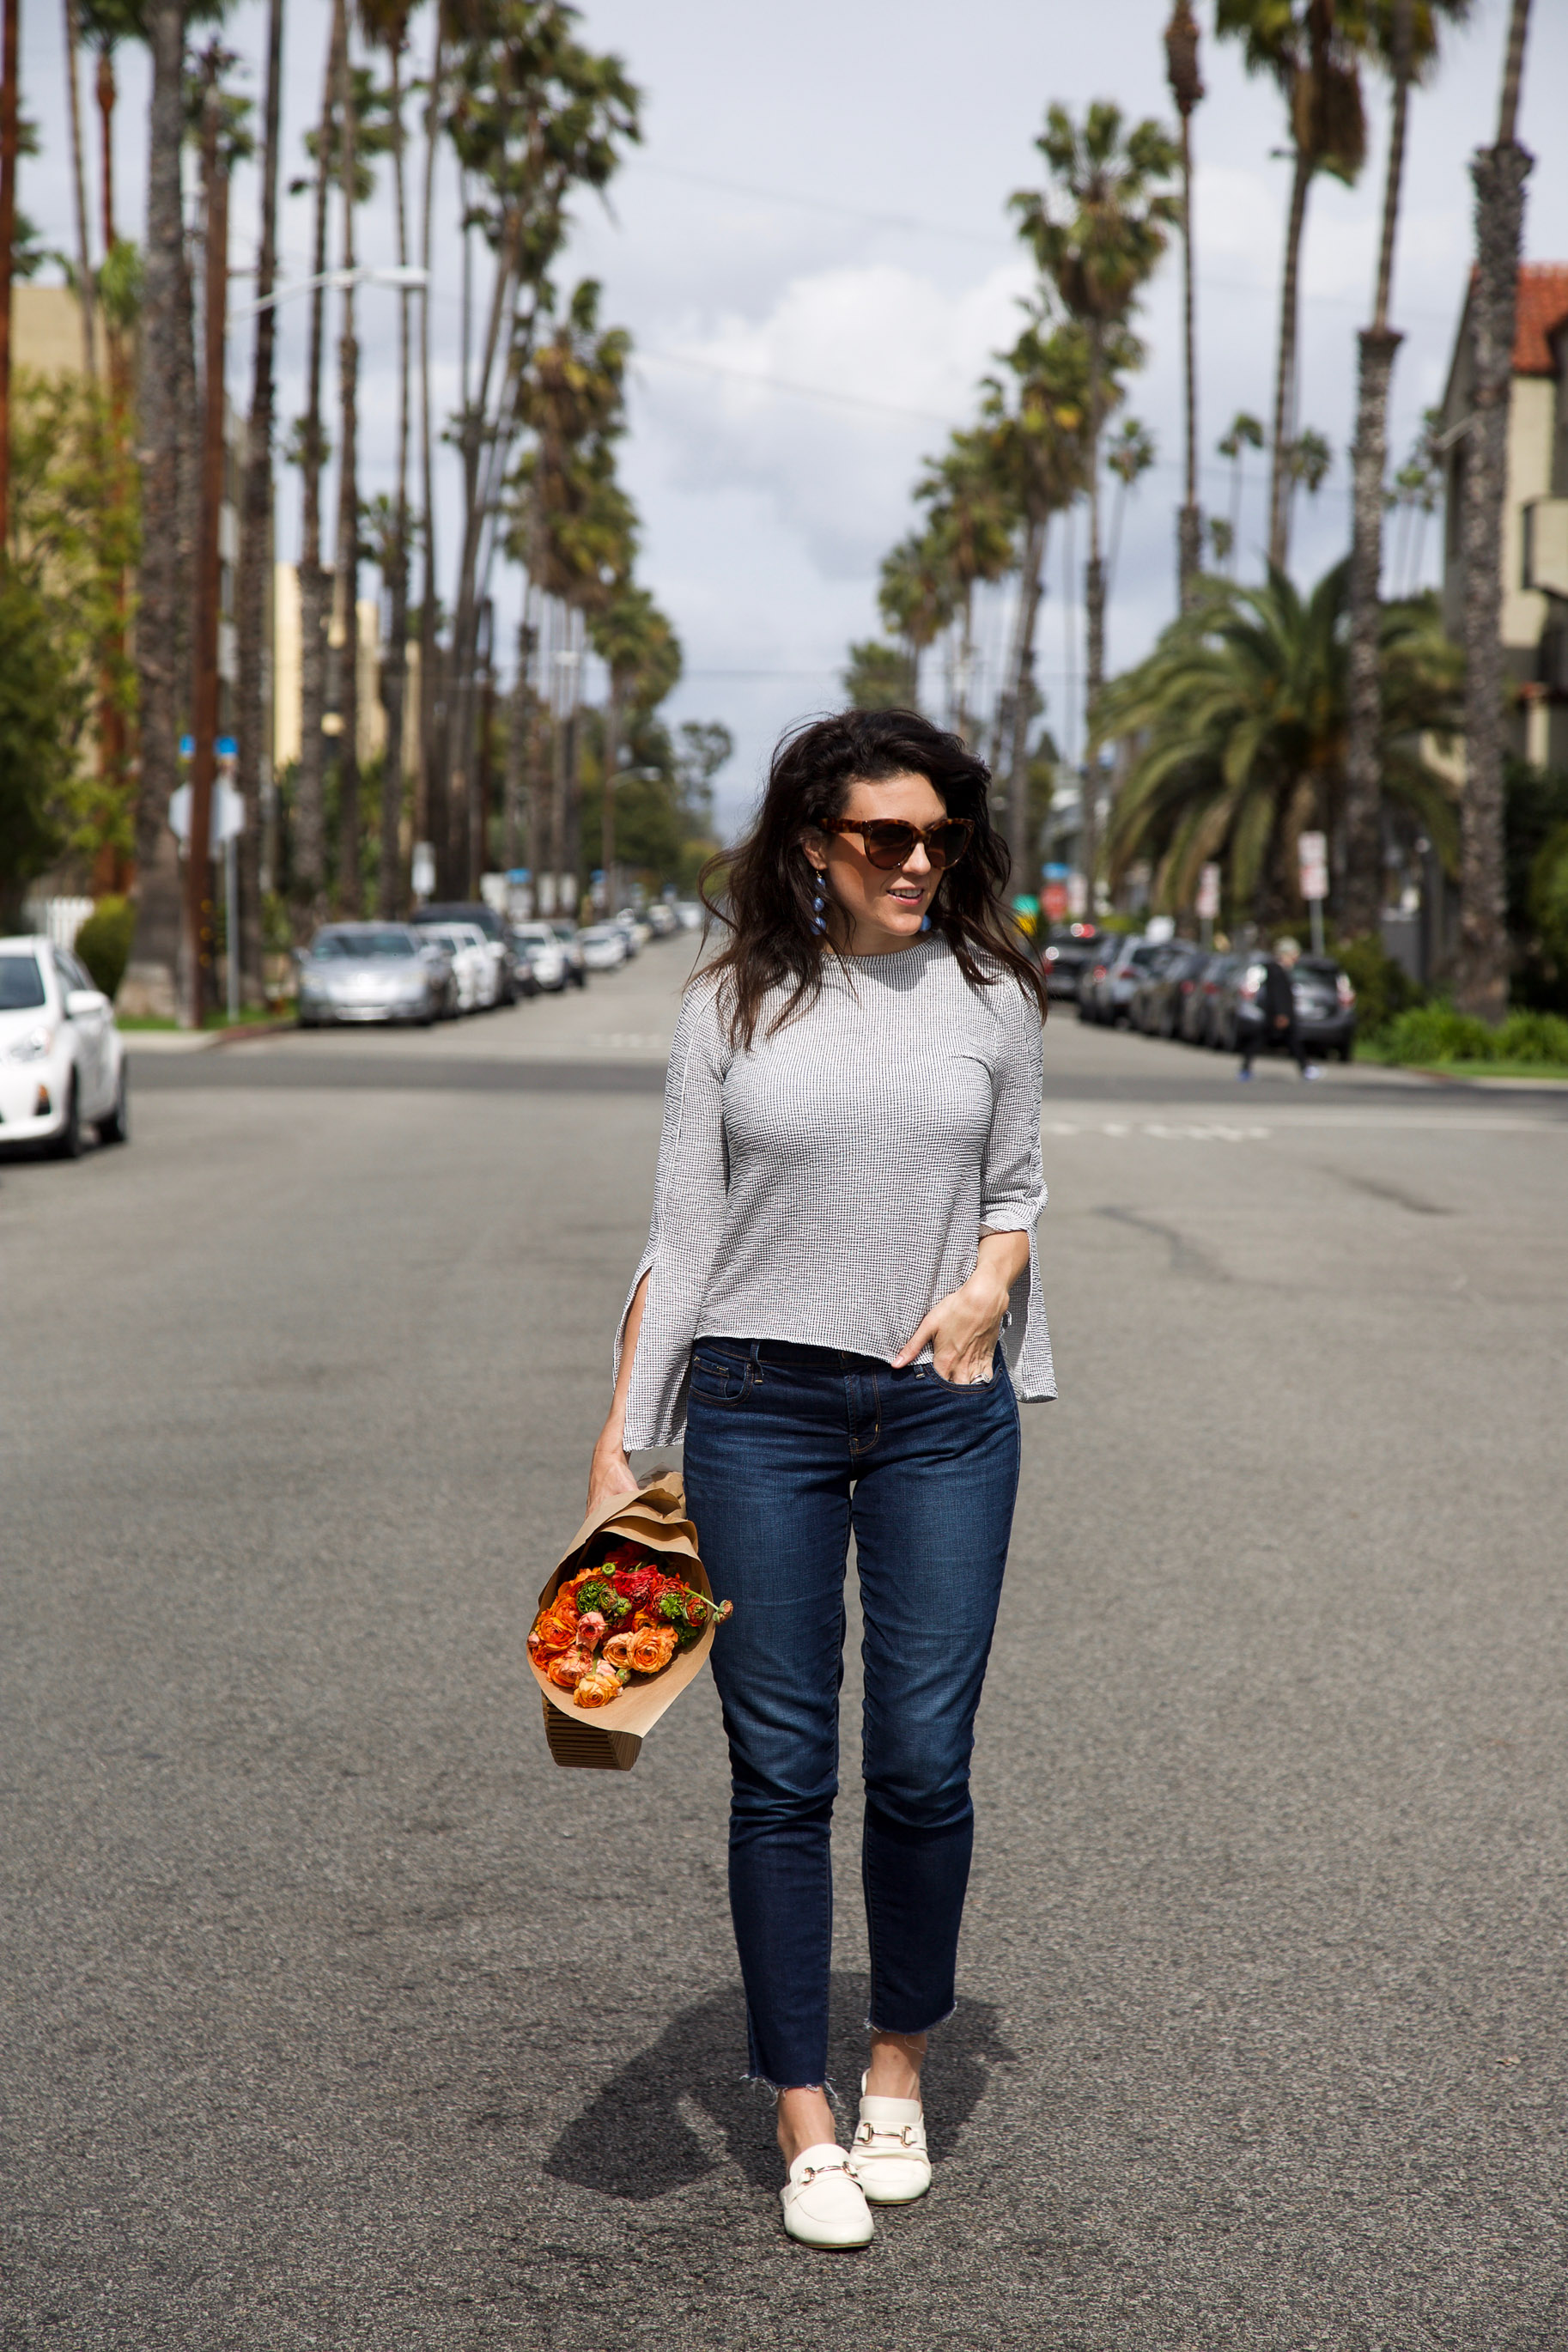 bell-sleeve-top-and-fringe-jeans-1-of-9.jpg